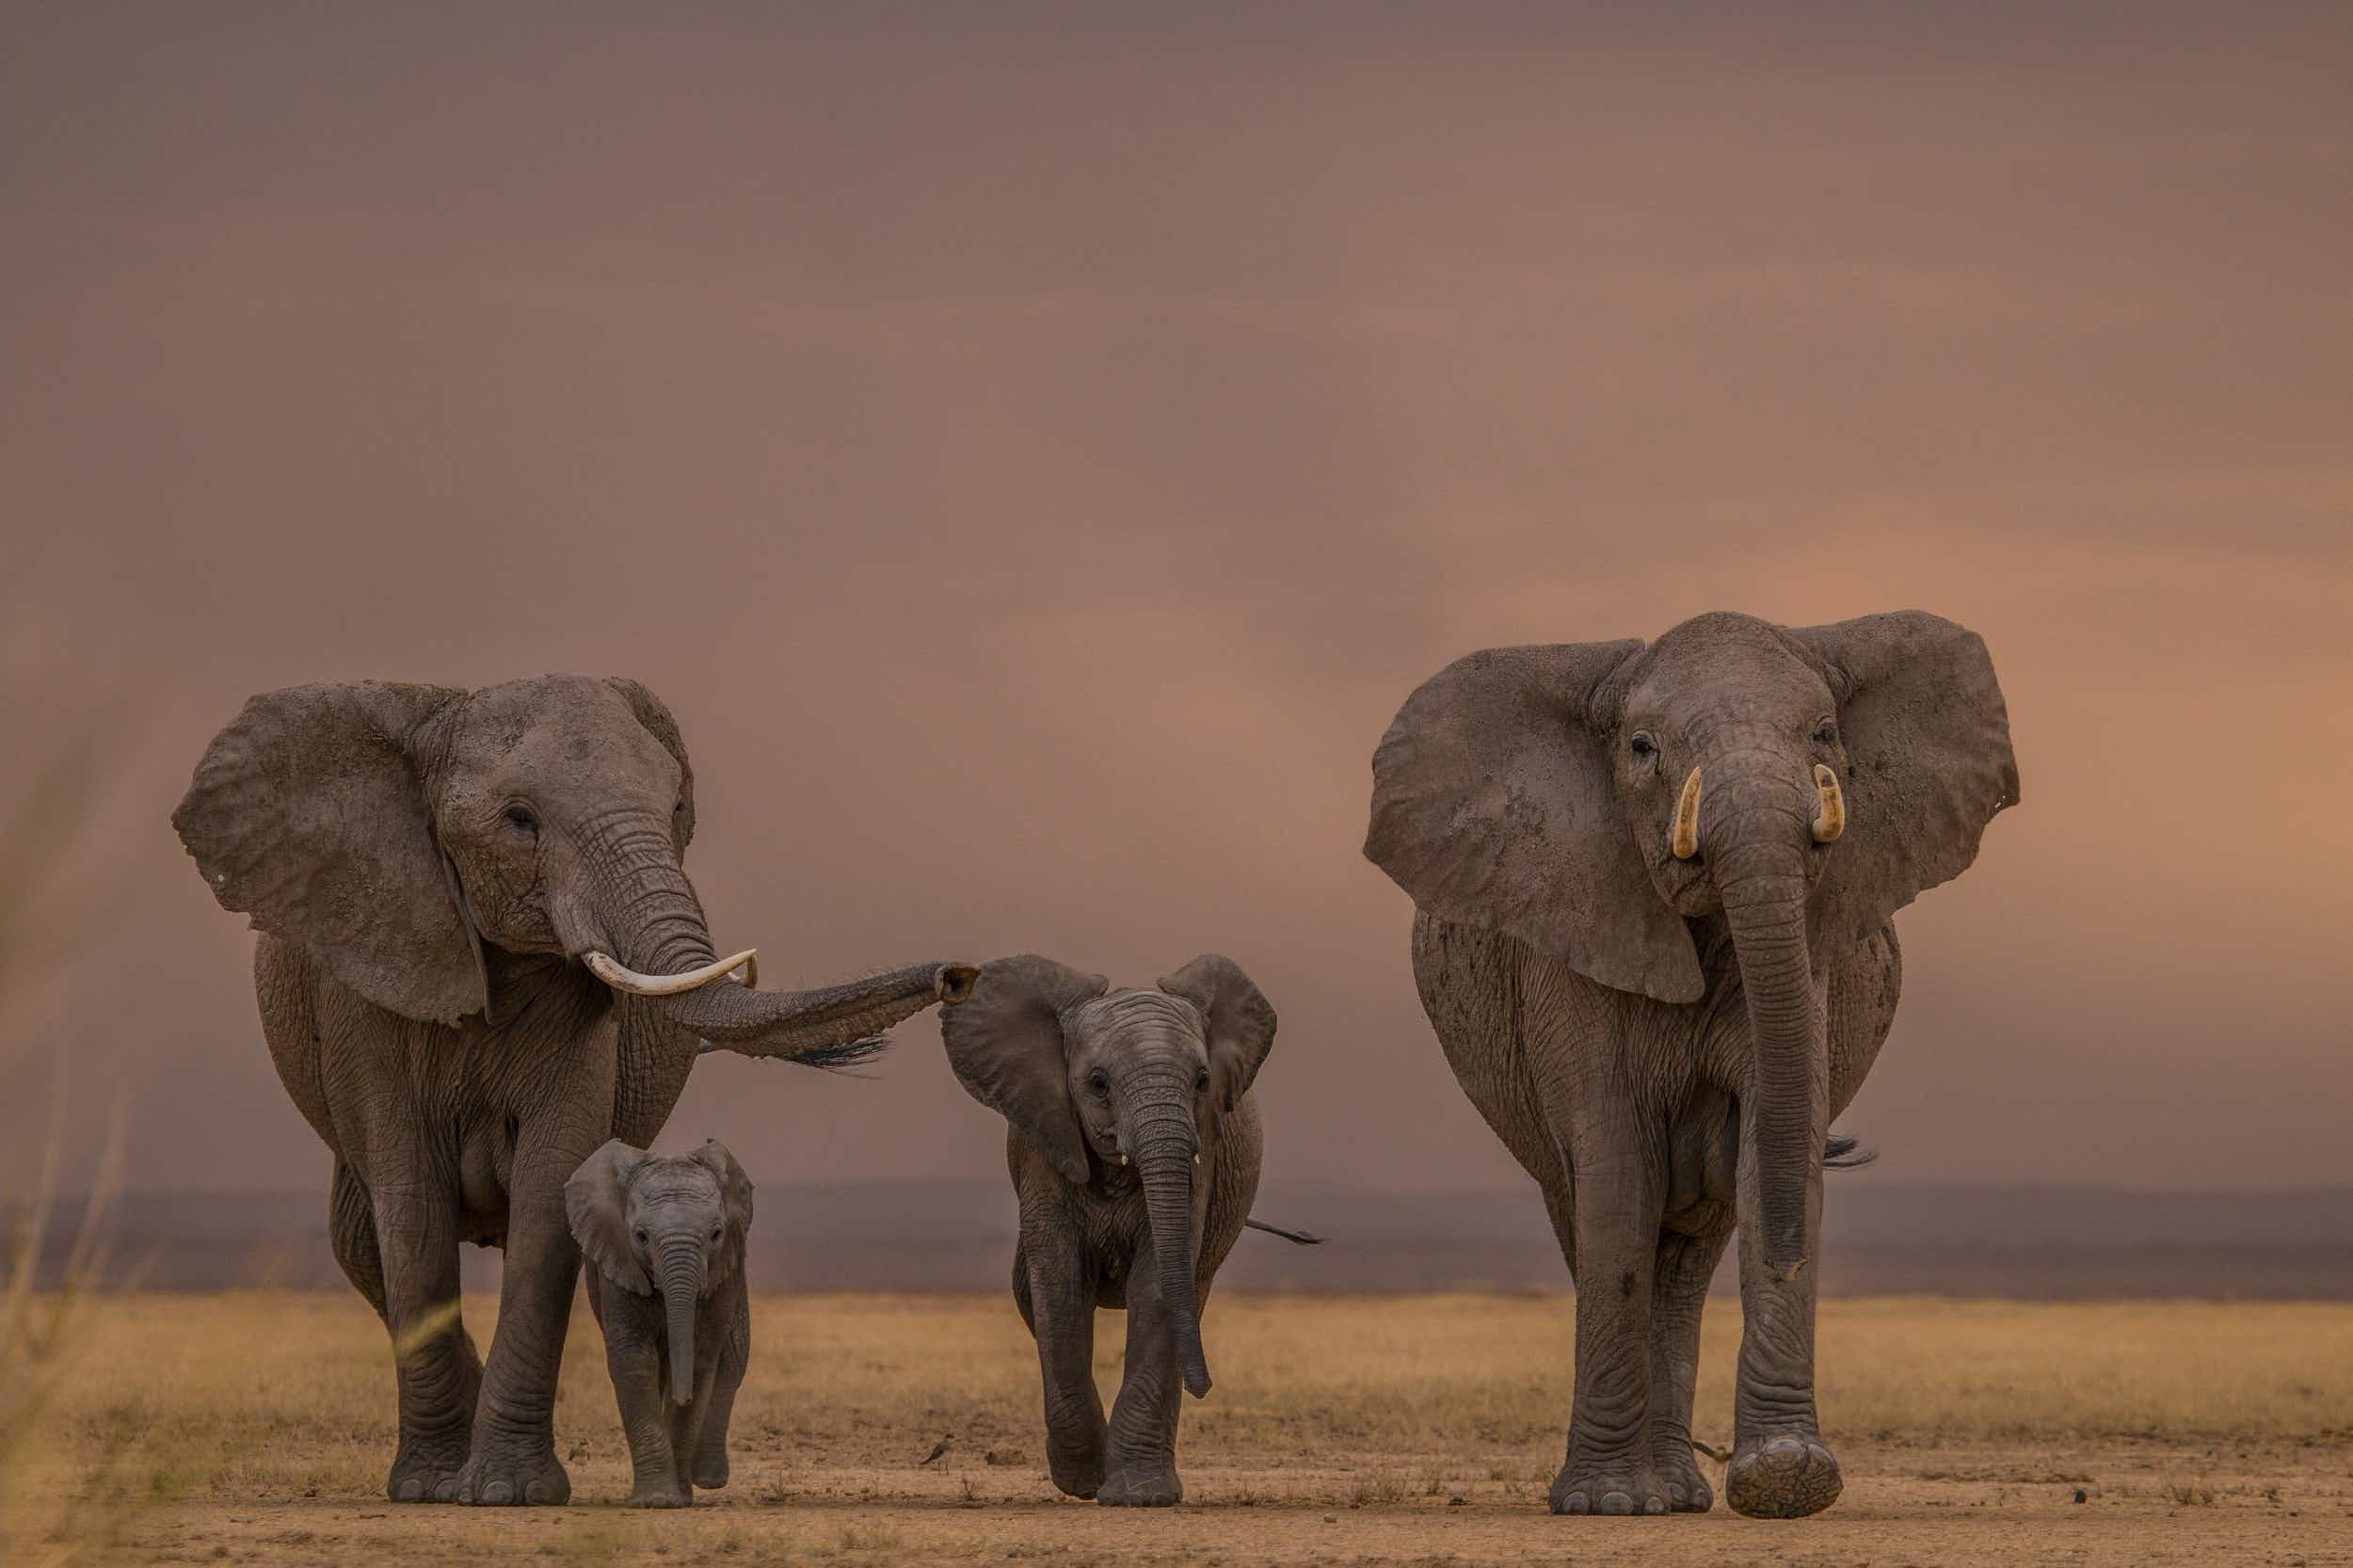 Whether little or large, elephants are one of the world's most iconic animals © Pieter Ras / 500px